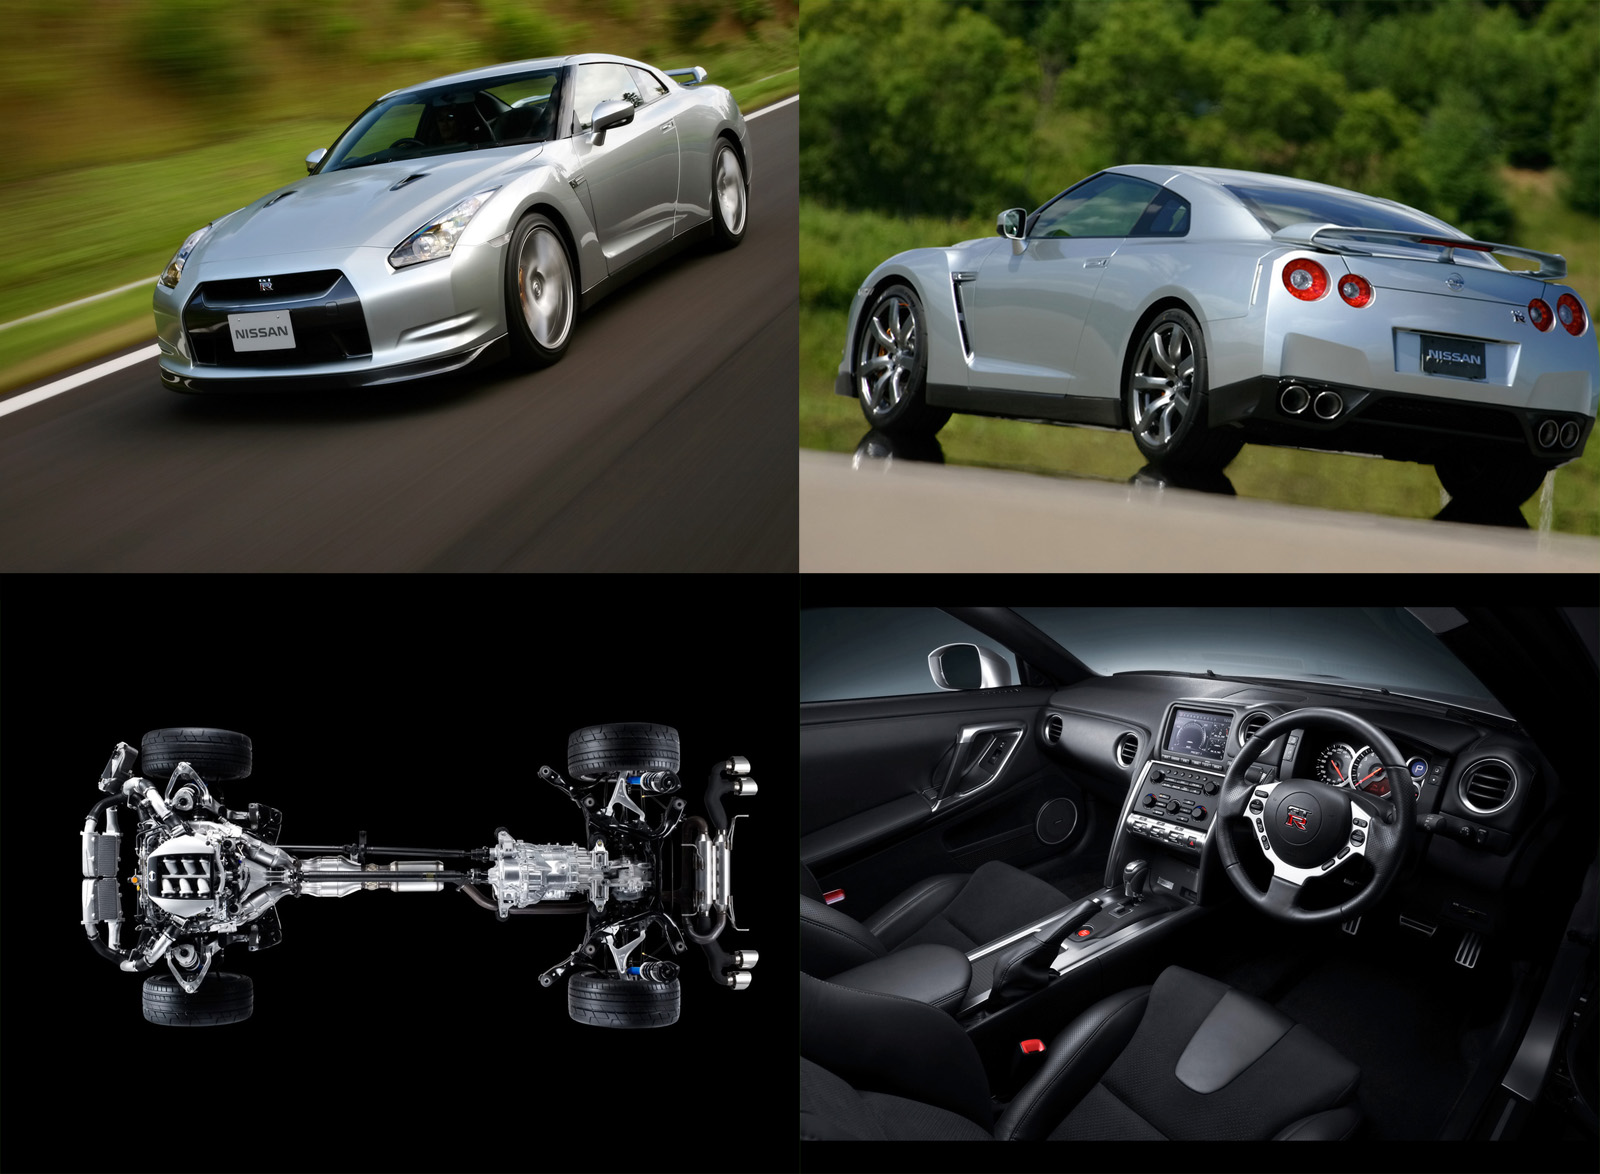 transmission cass e sur nissan gt r refus de garantie pour cause de vdc trop d connect. Black Bedroom Furniture Sets. Home Design Ideas